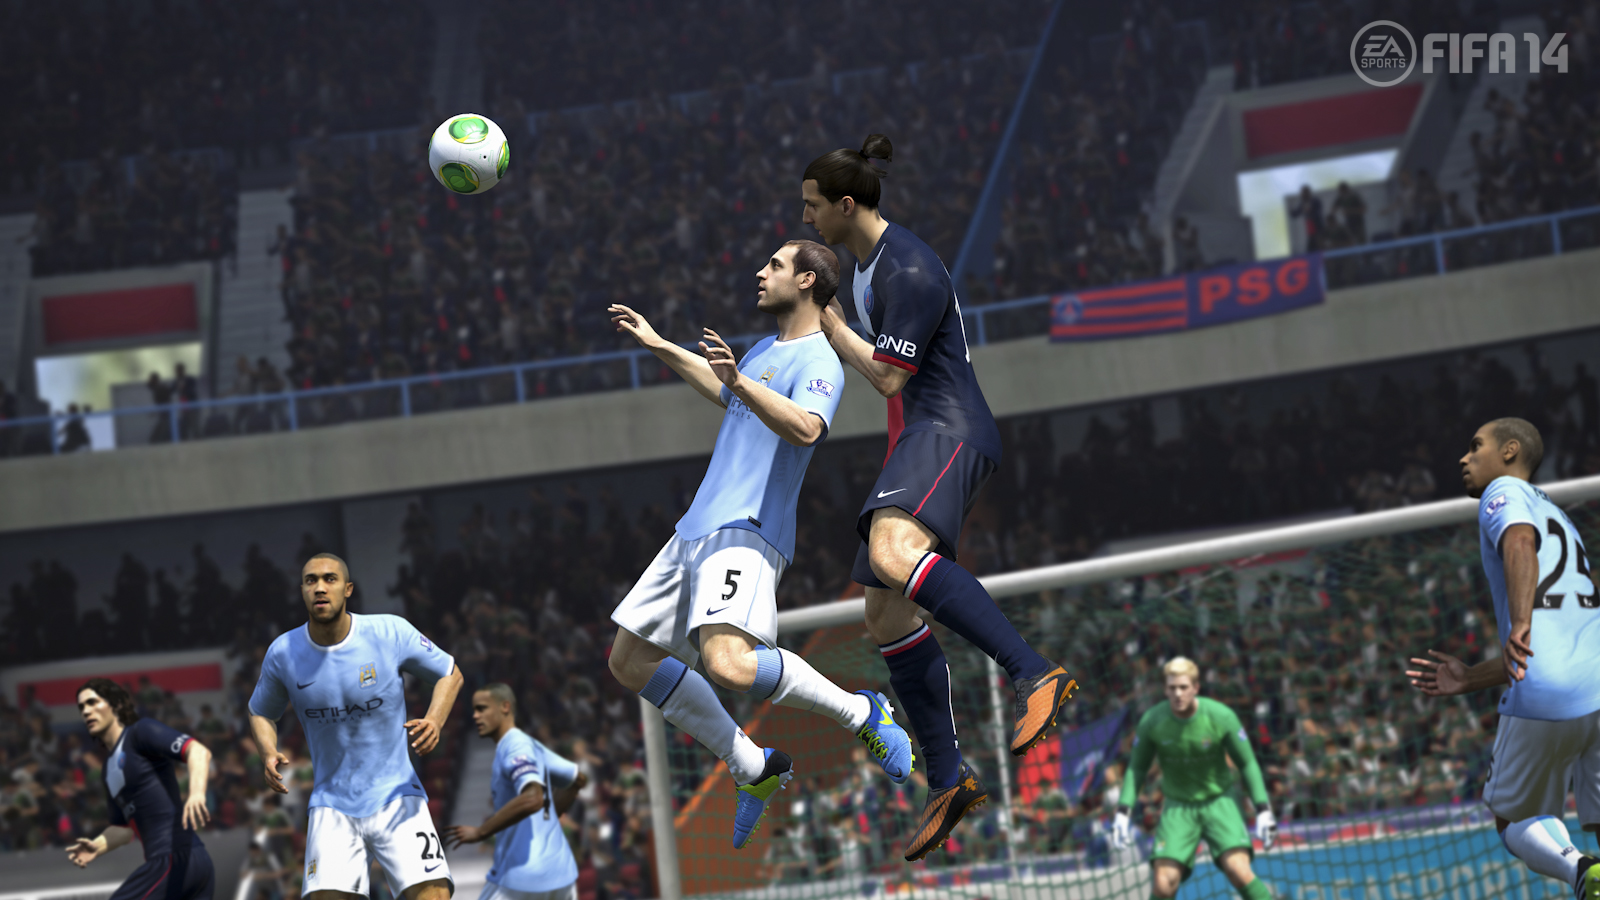 2013-09-23-fifa14_ps3_header_wm.jpg